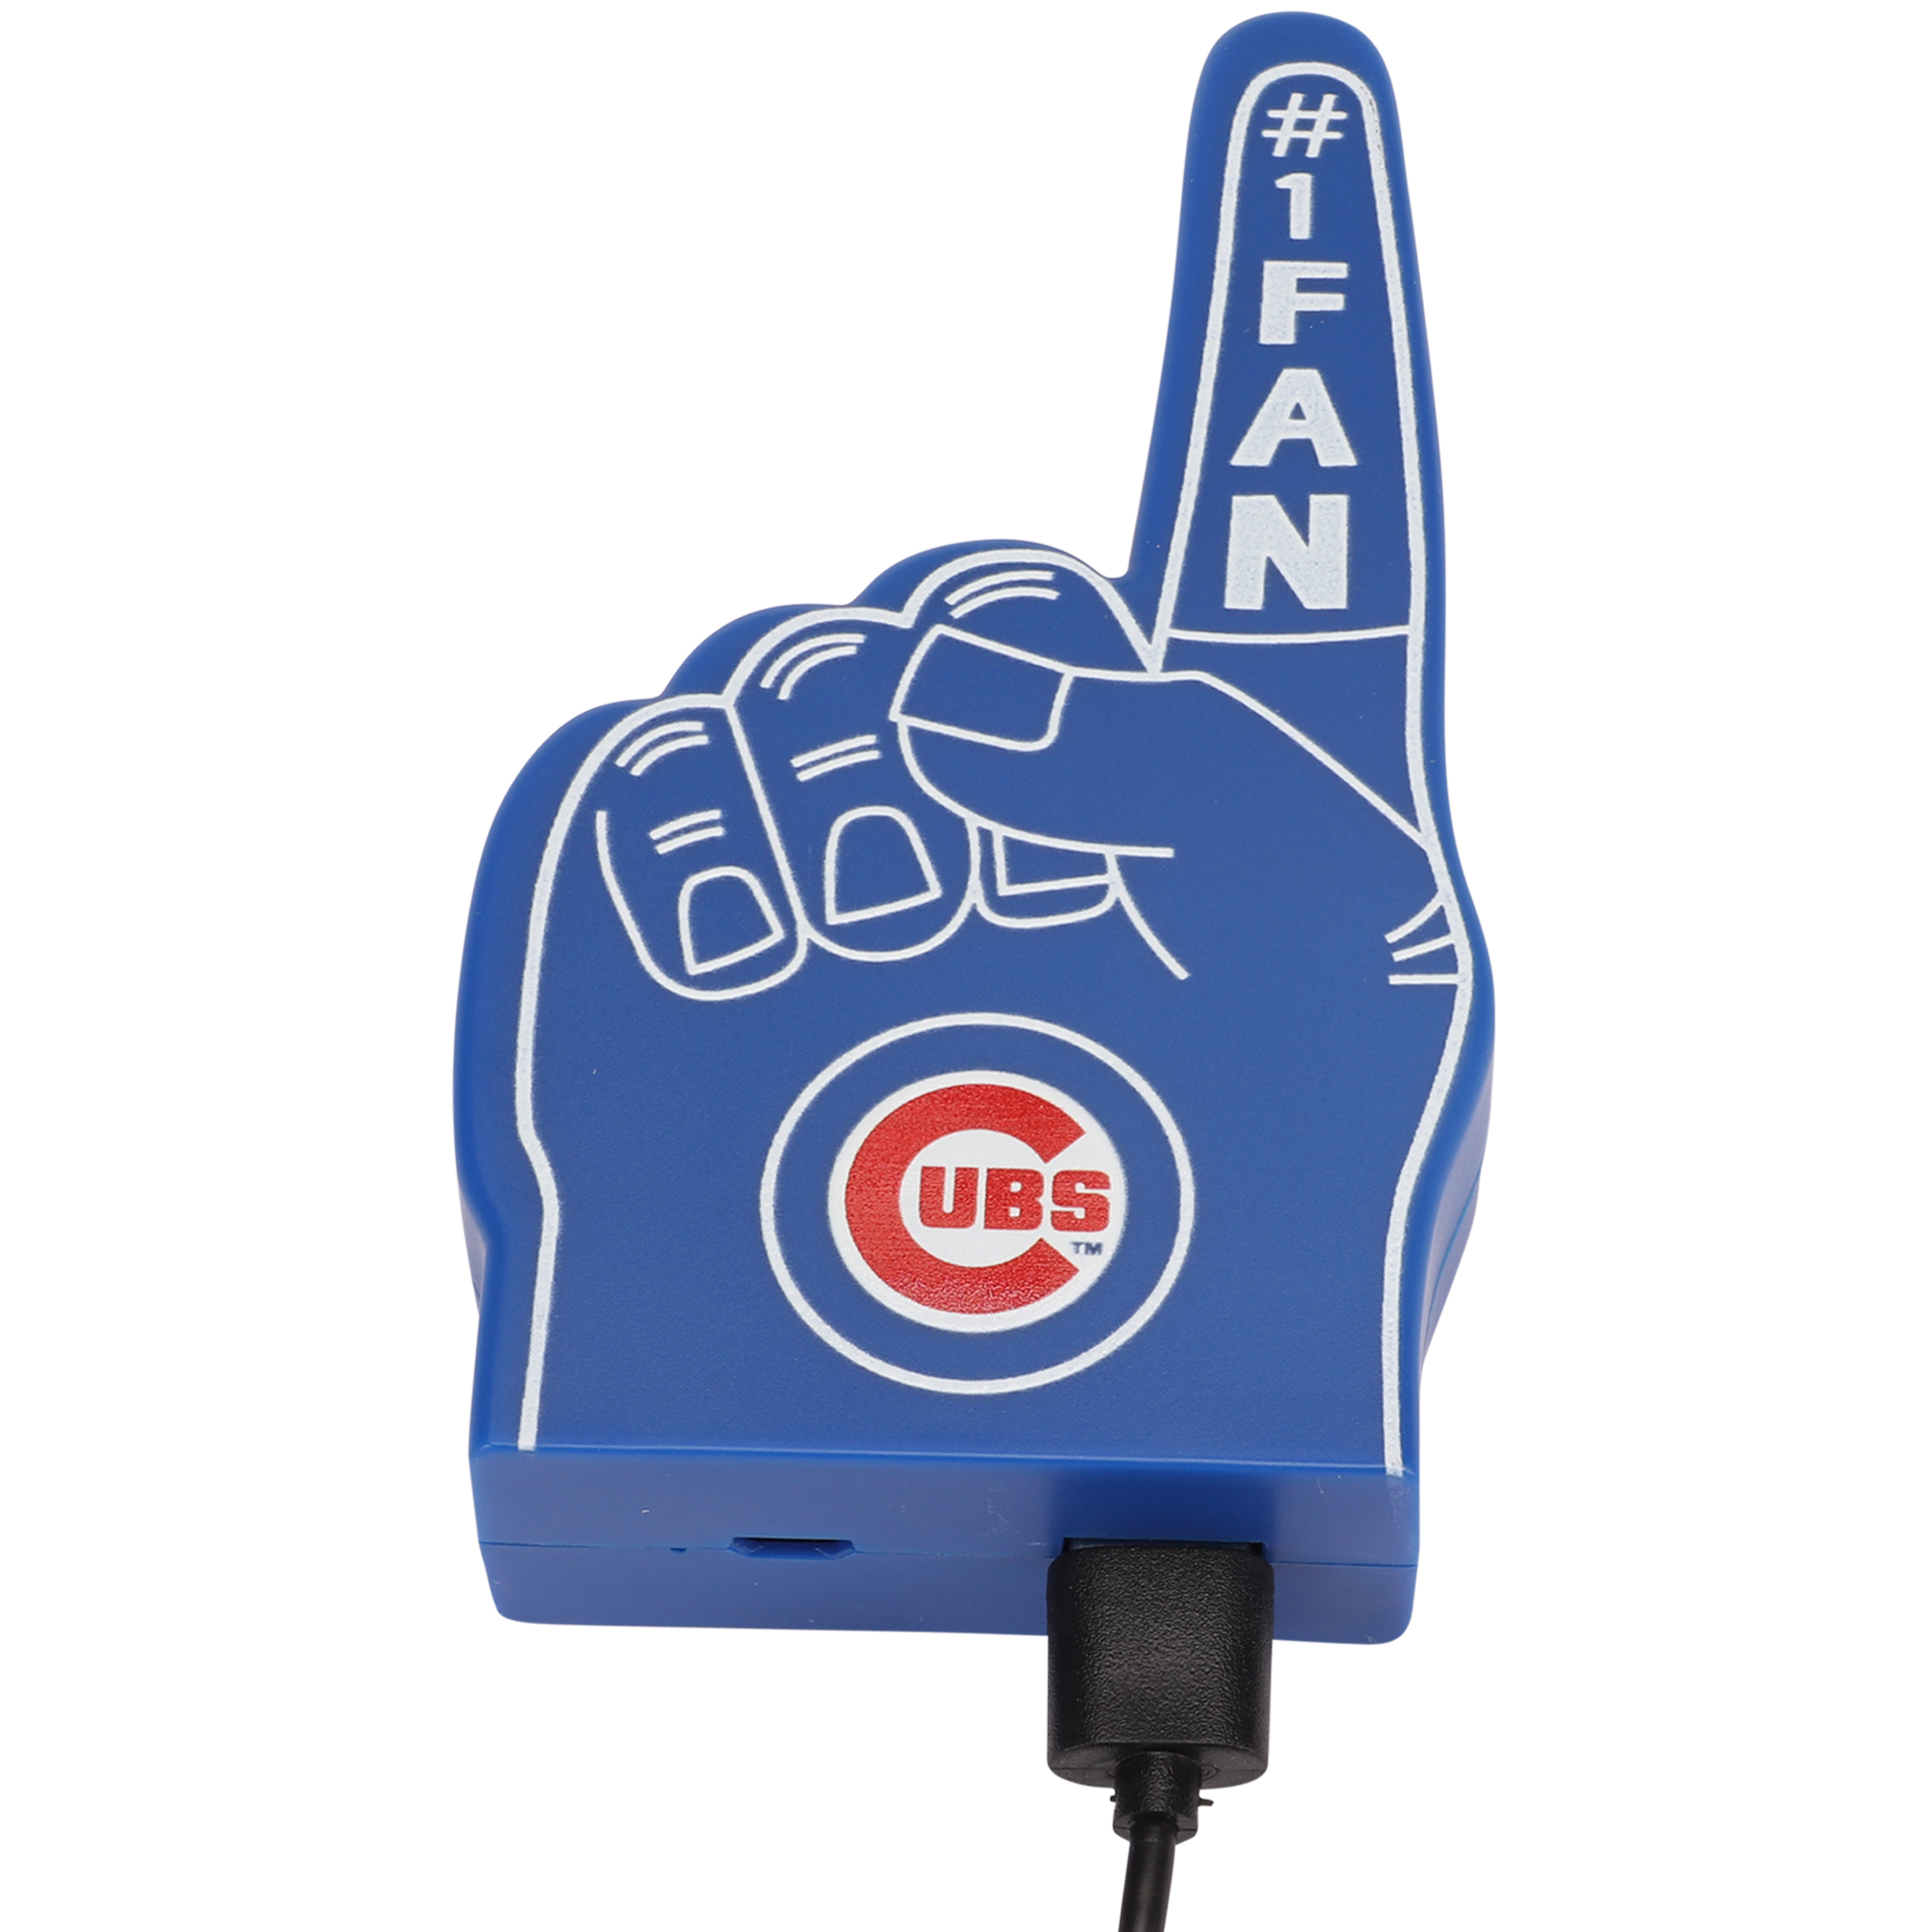 Chicago Cubs #1 Fan Finger Power Bank - No Size